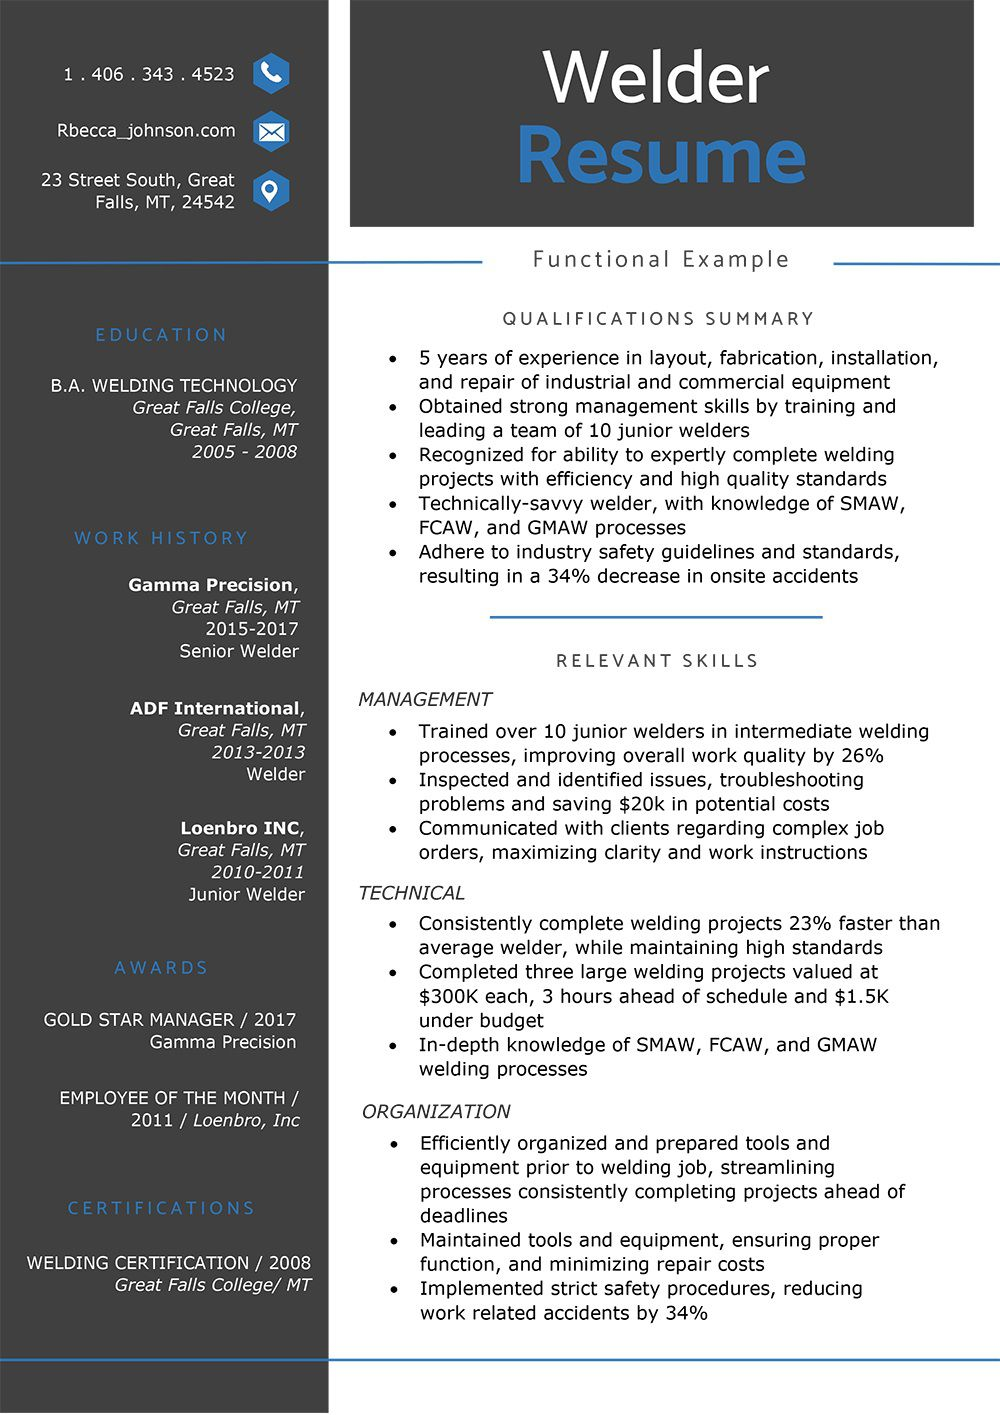 Free Functional Resume Template Addictionary